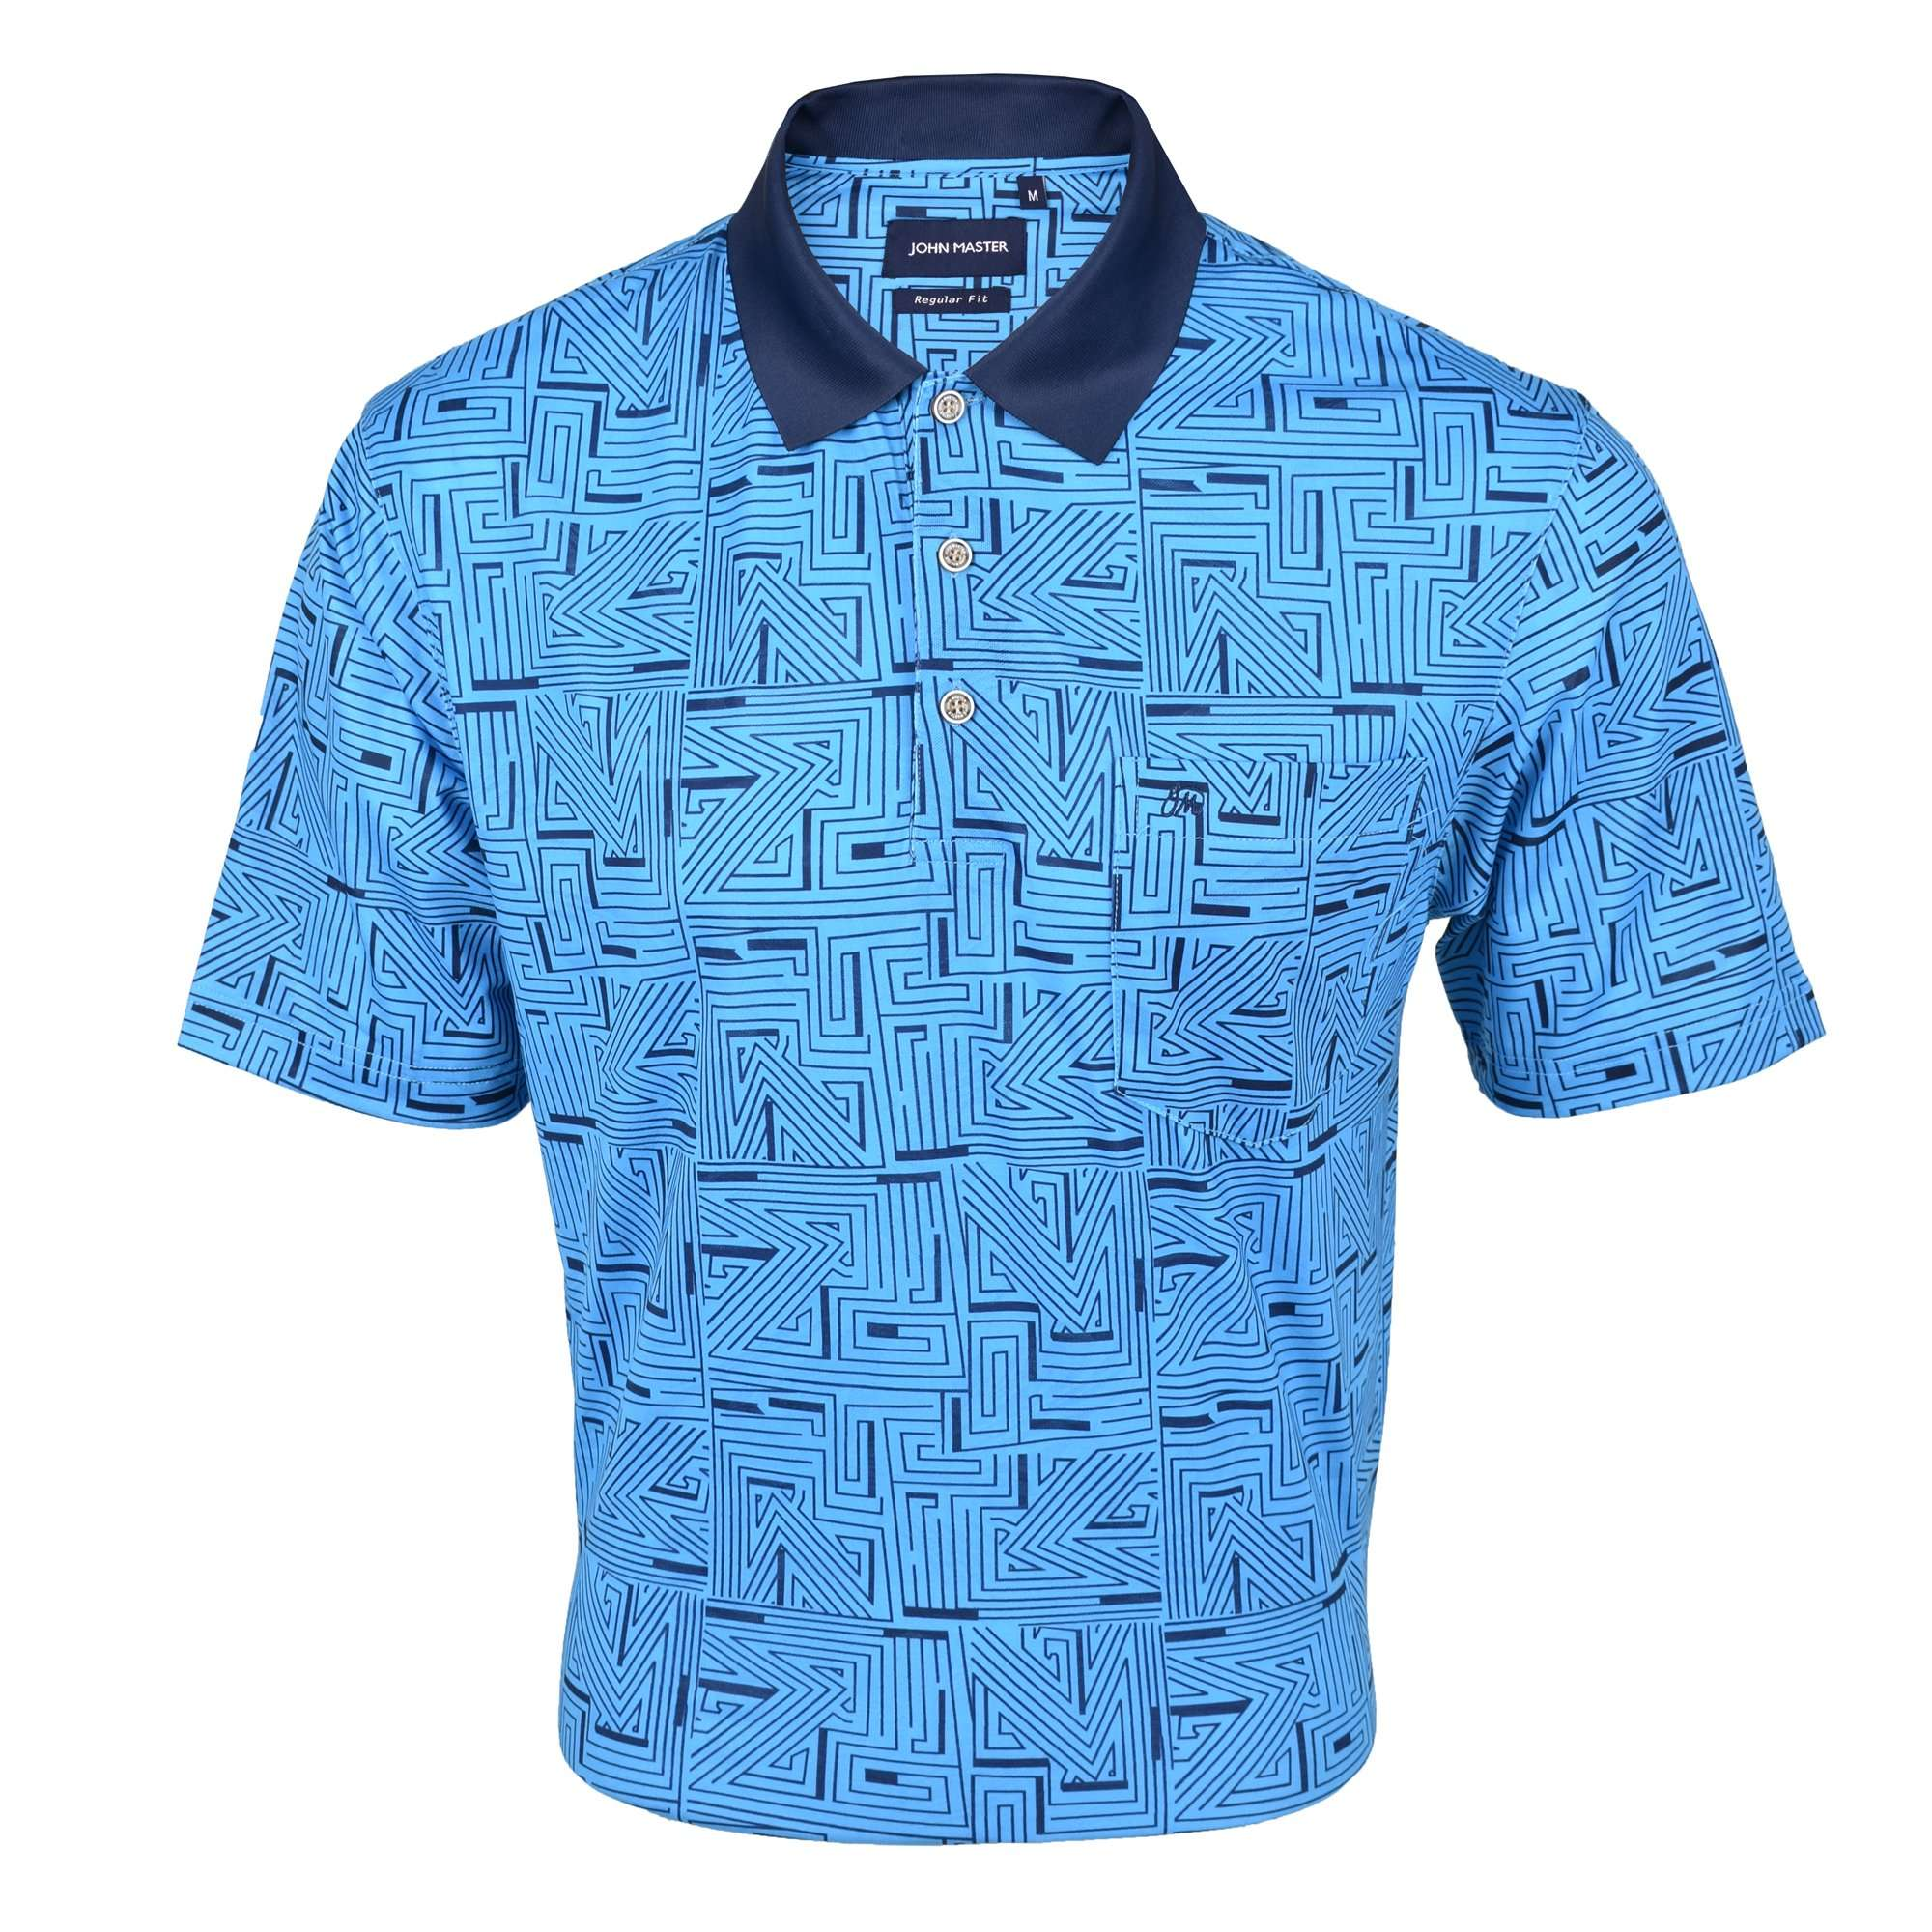 John Master Regular Fit Short Sleeve Polo Tee Turquoise 8068002-T5 : Buy John Master online at CMG.MY